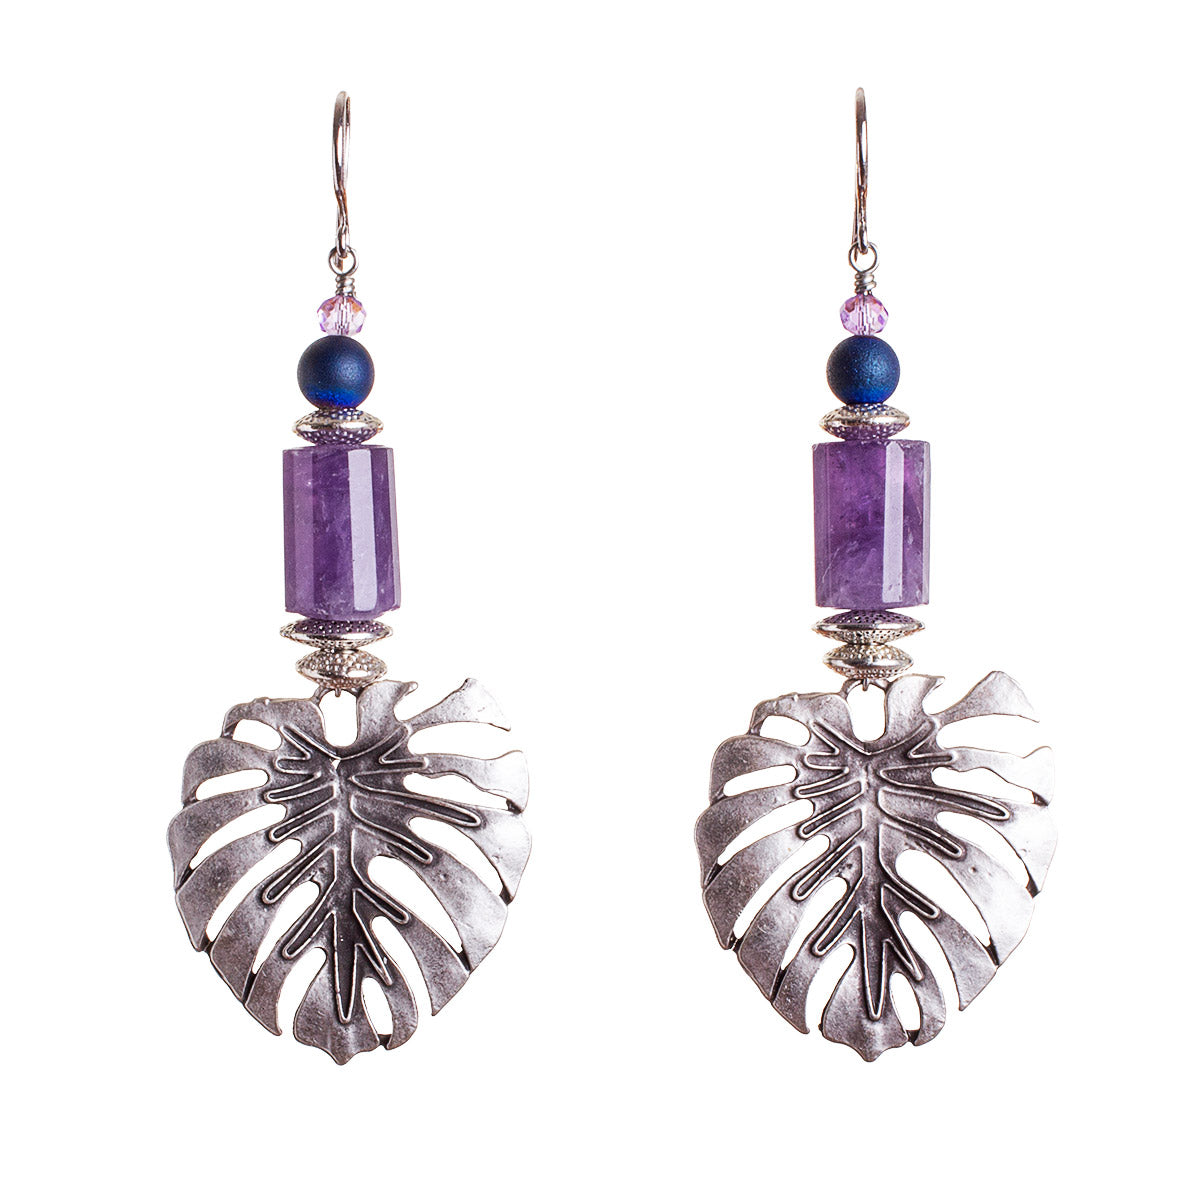 N°679 The Amethyst & Monstera Curiosity Statement Earrings